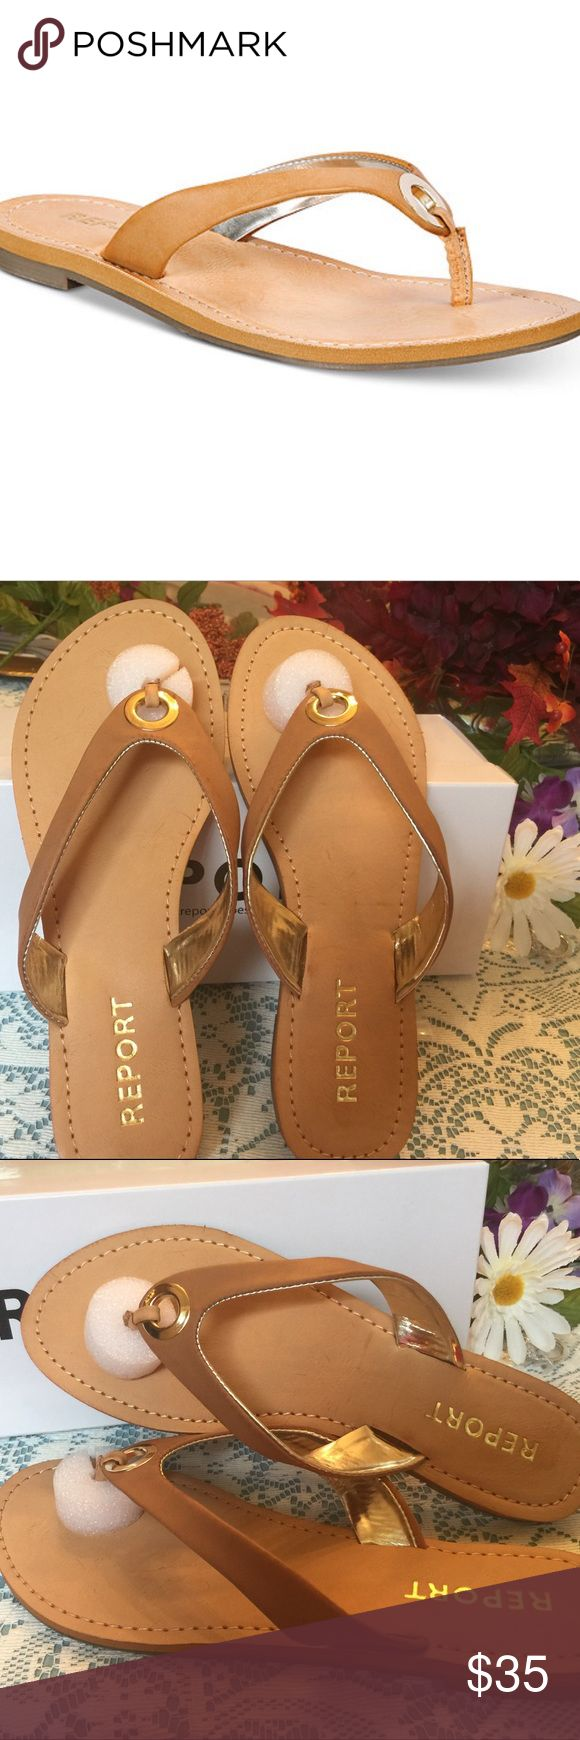 Thong Sandals These are by Report. Great camel flip flops with gold metallic hardware right at the Thong. Love these! 🎀🎀 Report Shoes Sandals